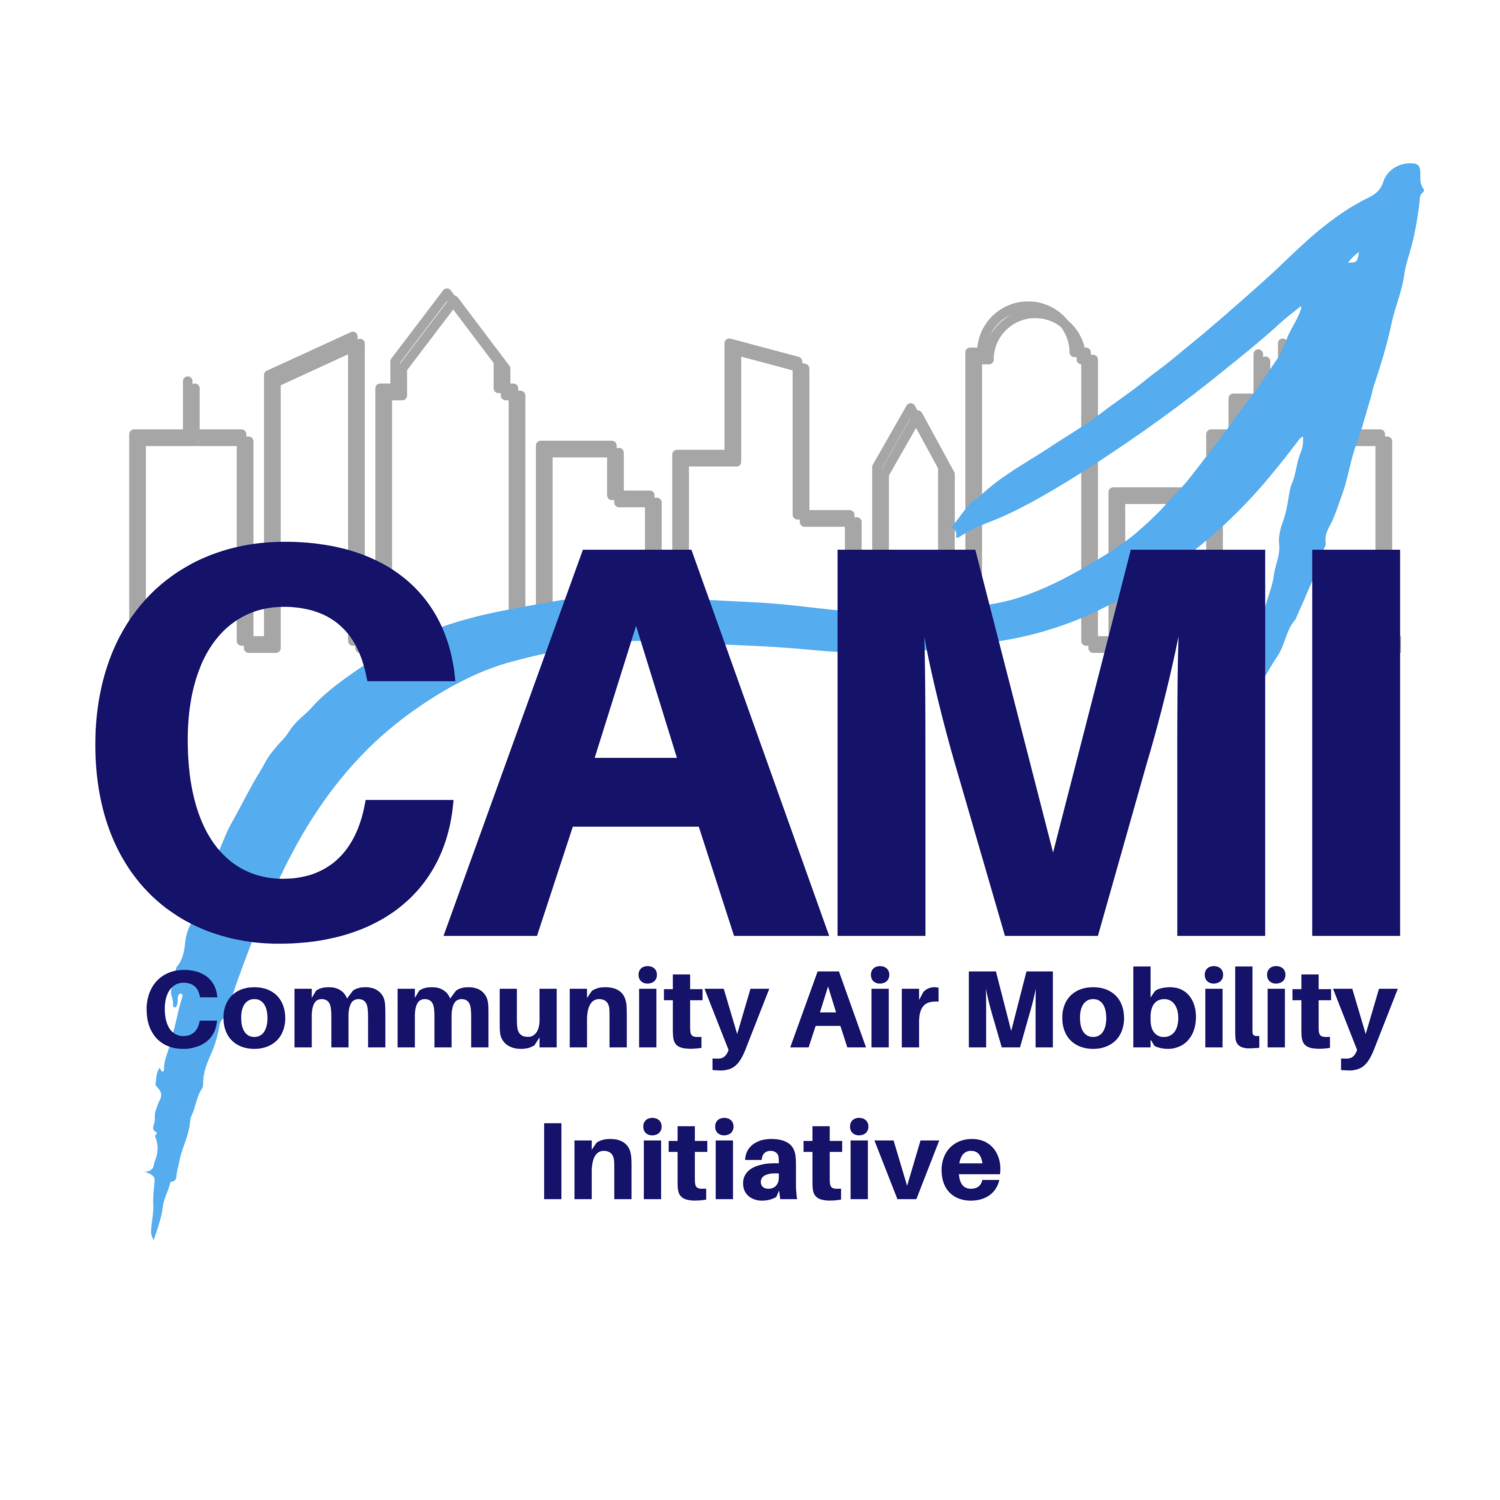 Community Air Mobility Initiative